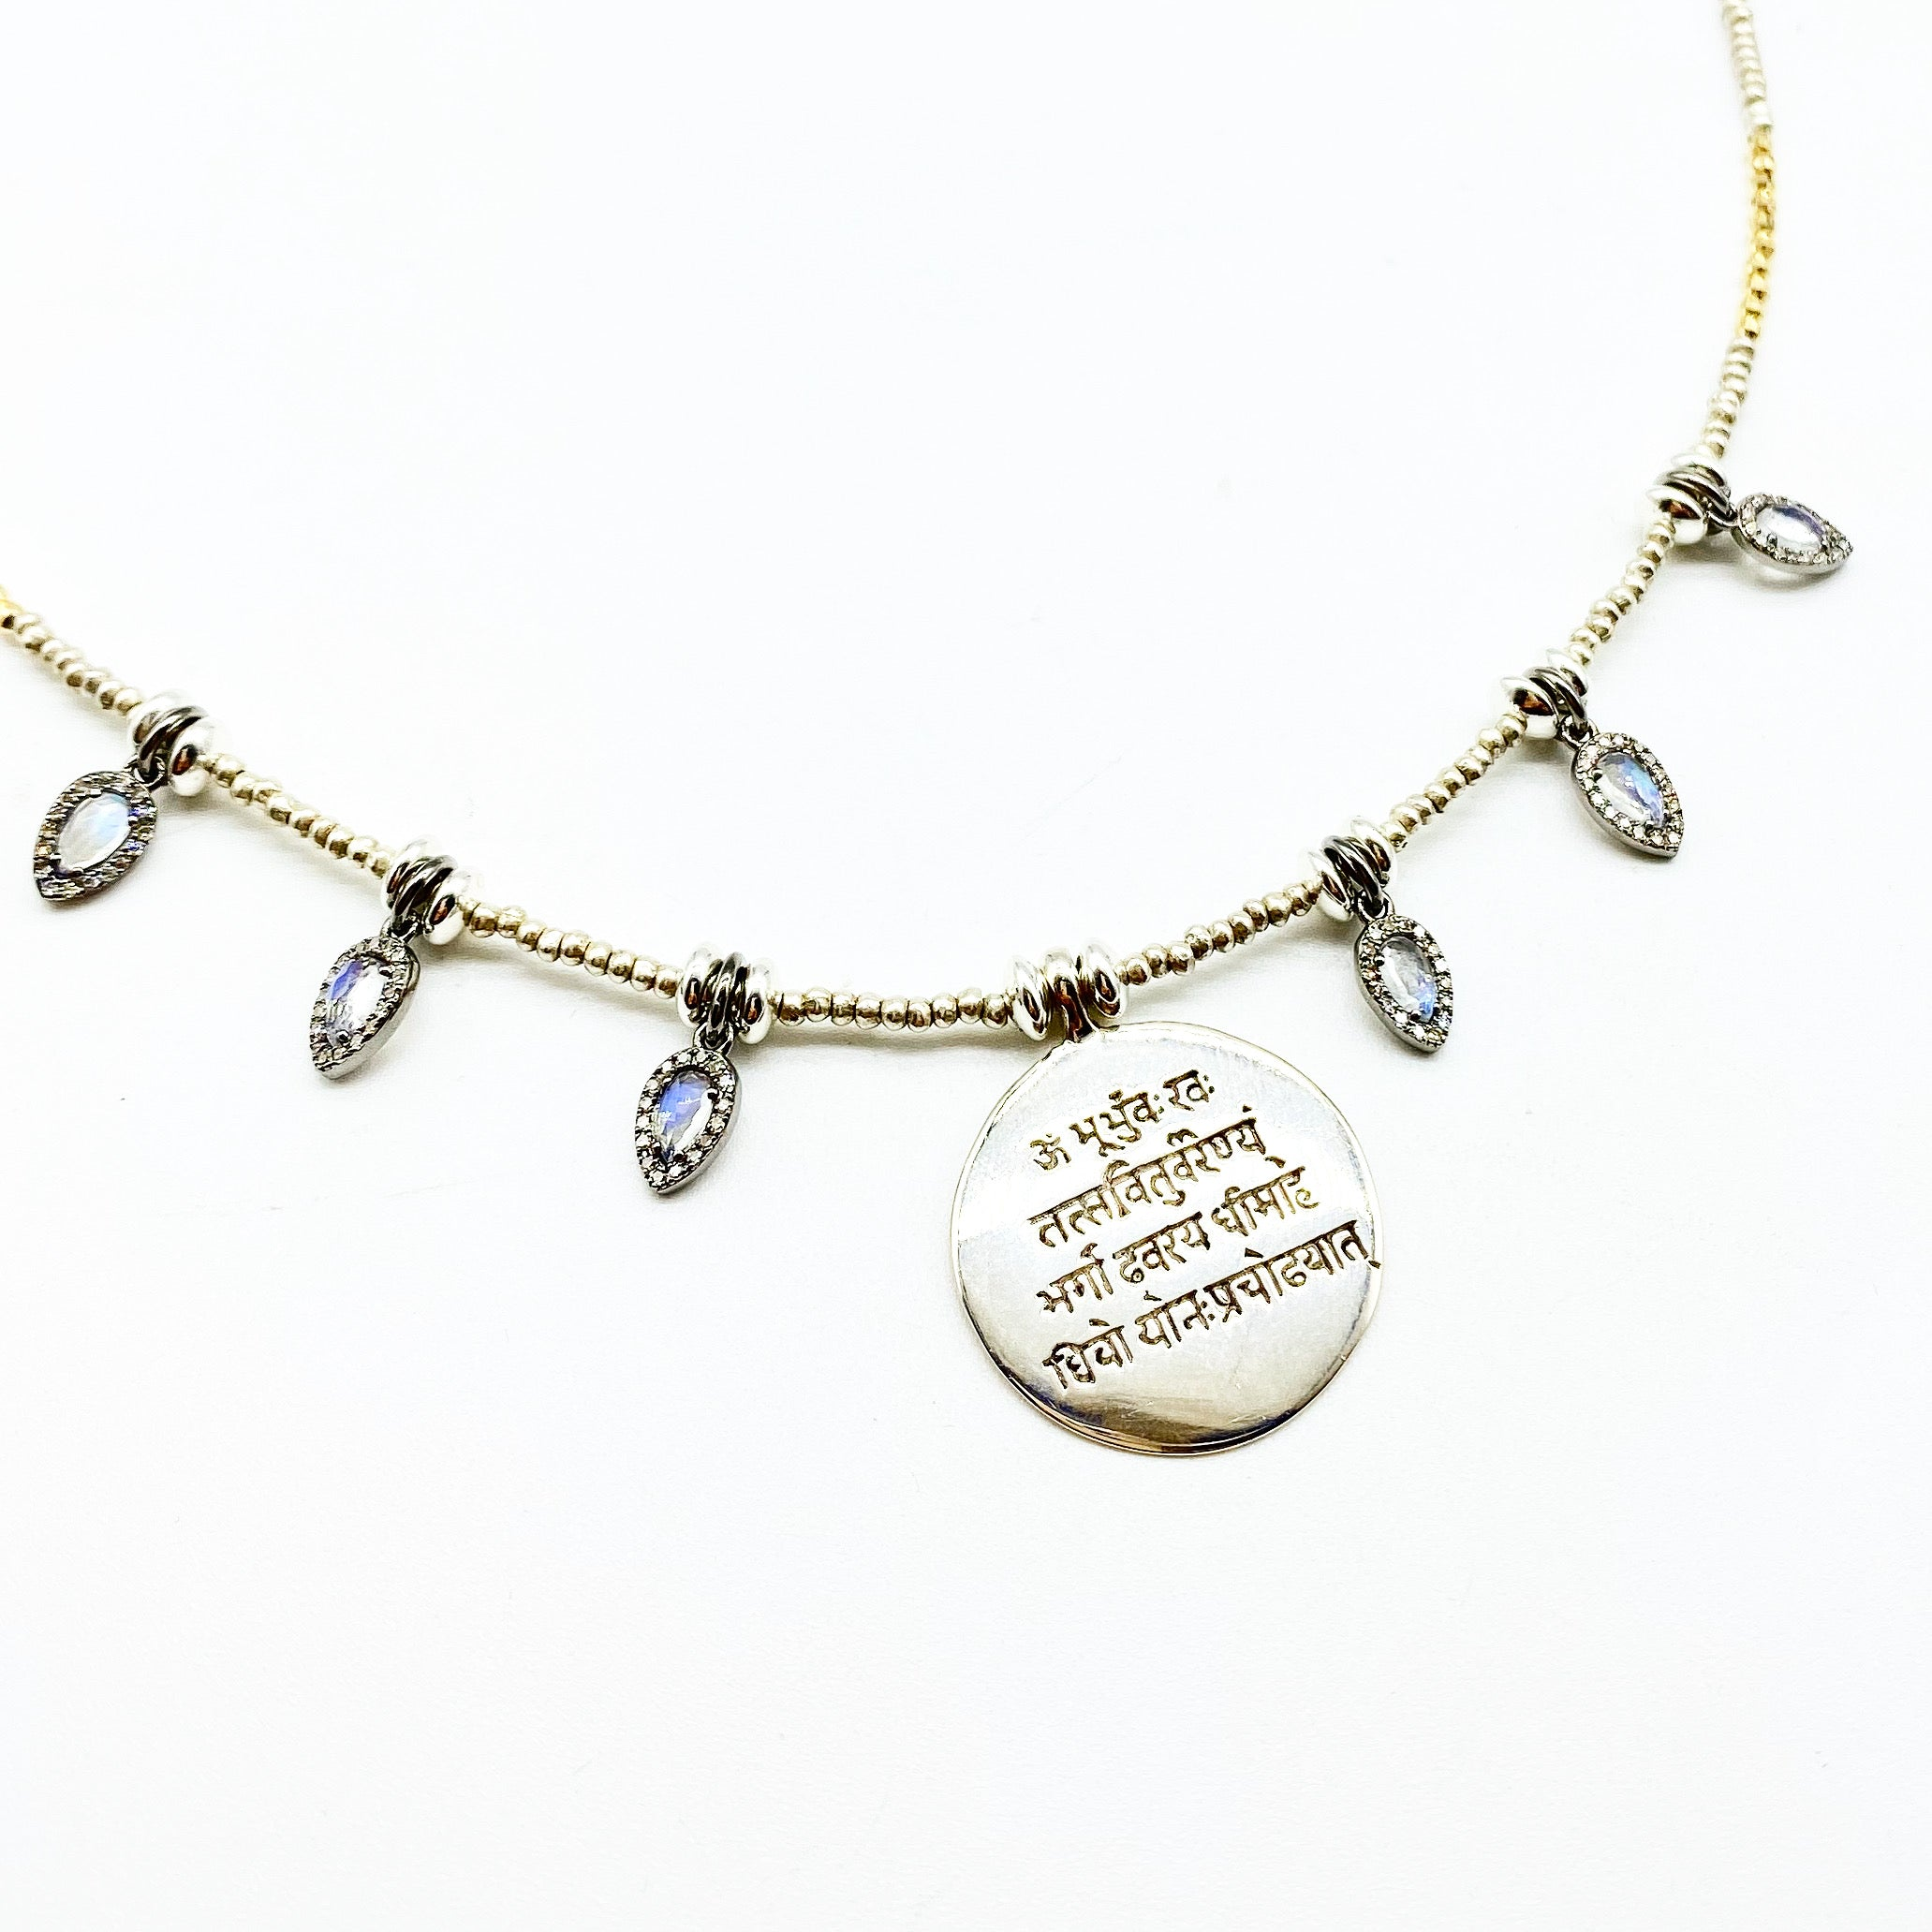 GAYATRI WISDOM MANTRA AMULET NECKLACE